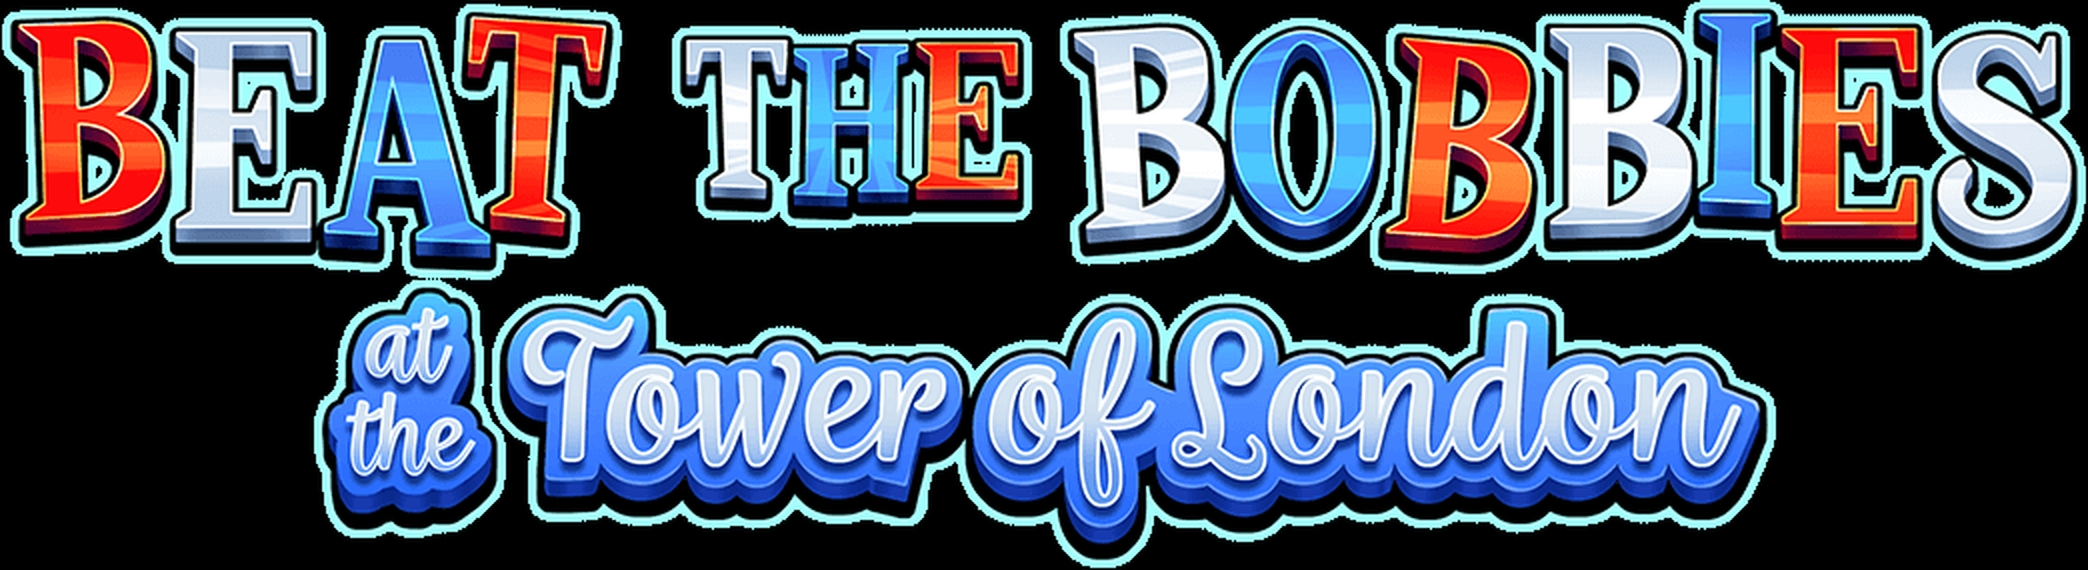 The Beat The Bobbies at the Tower of London Online Slot Demo Game by EYECON